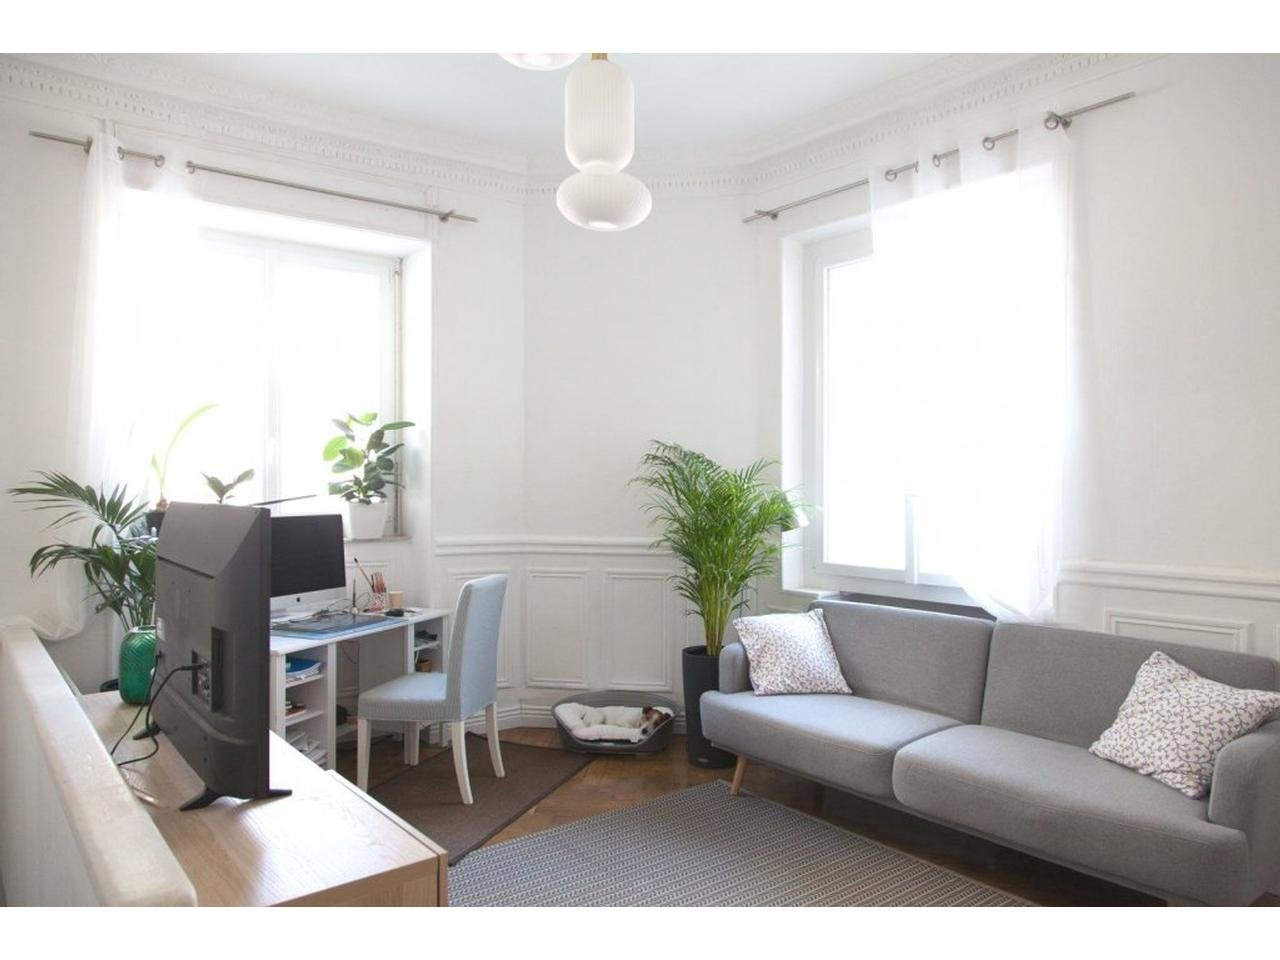 Appartement  2 Rooms 48.91m2  for sale   175000 €